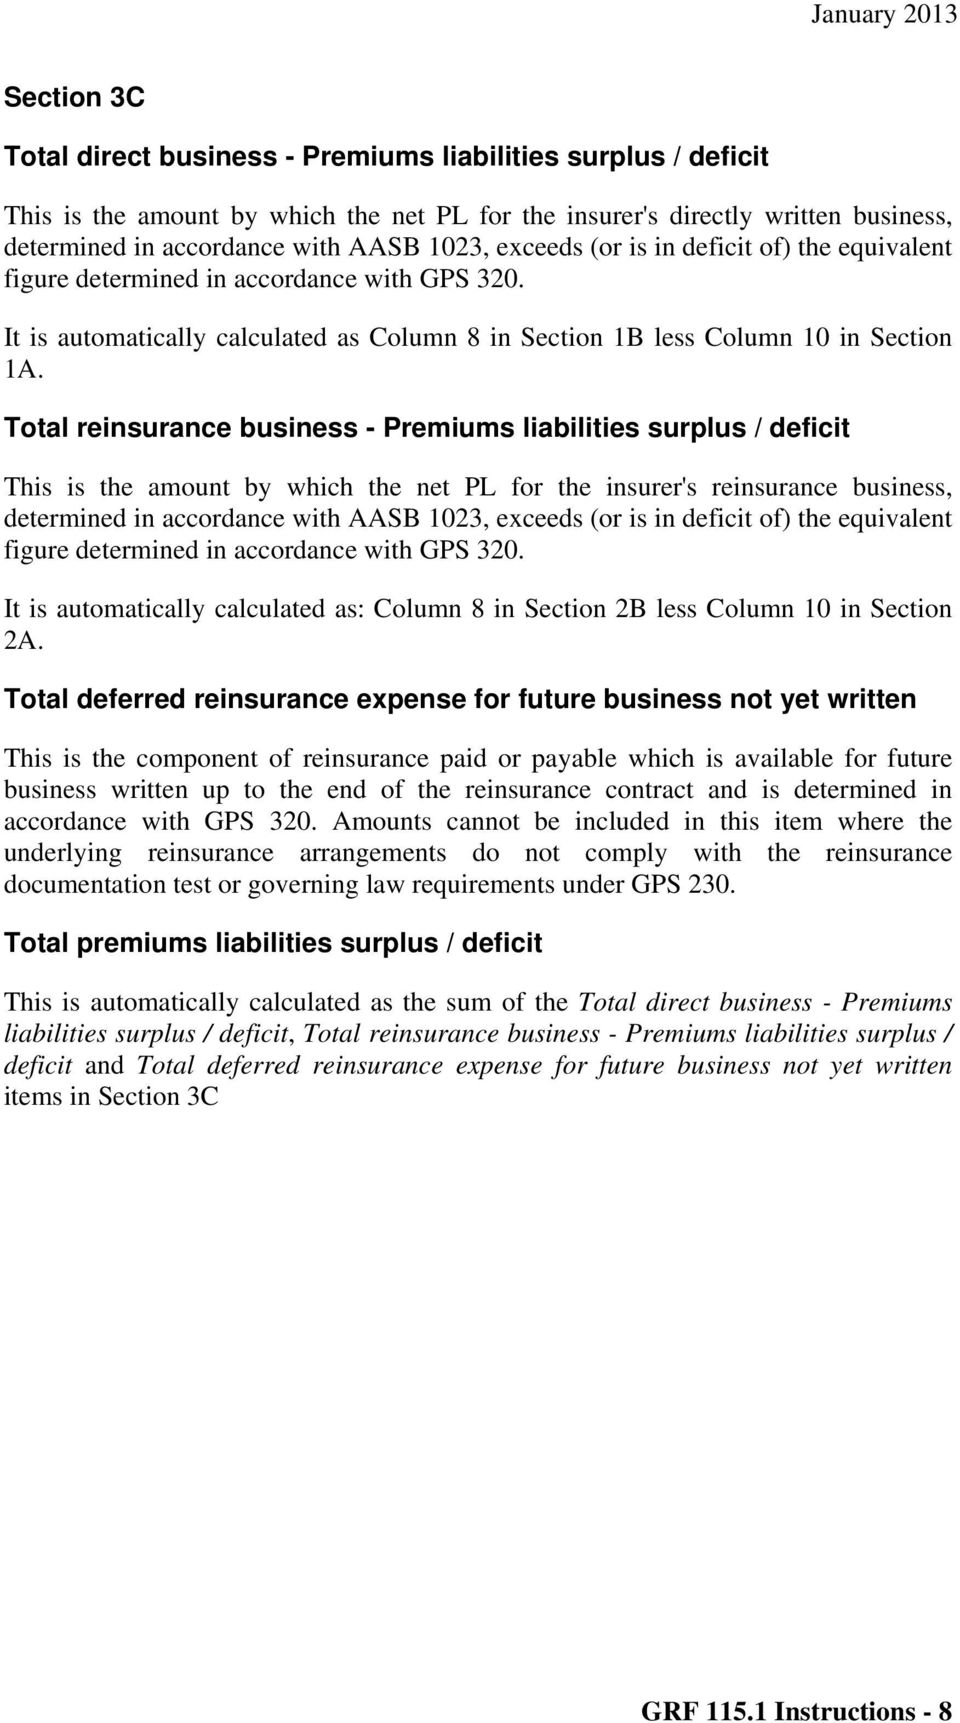 Total reinsurance business - Premiums liabilities surplus / deficit This is the amount by which the net PL for the insurer's reinsurance business, determined in accordance with AASB 1023, exceeds (or